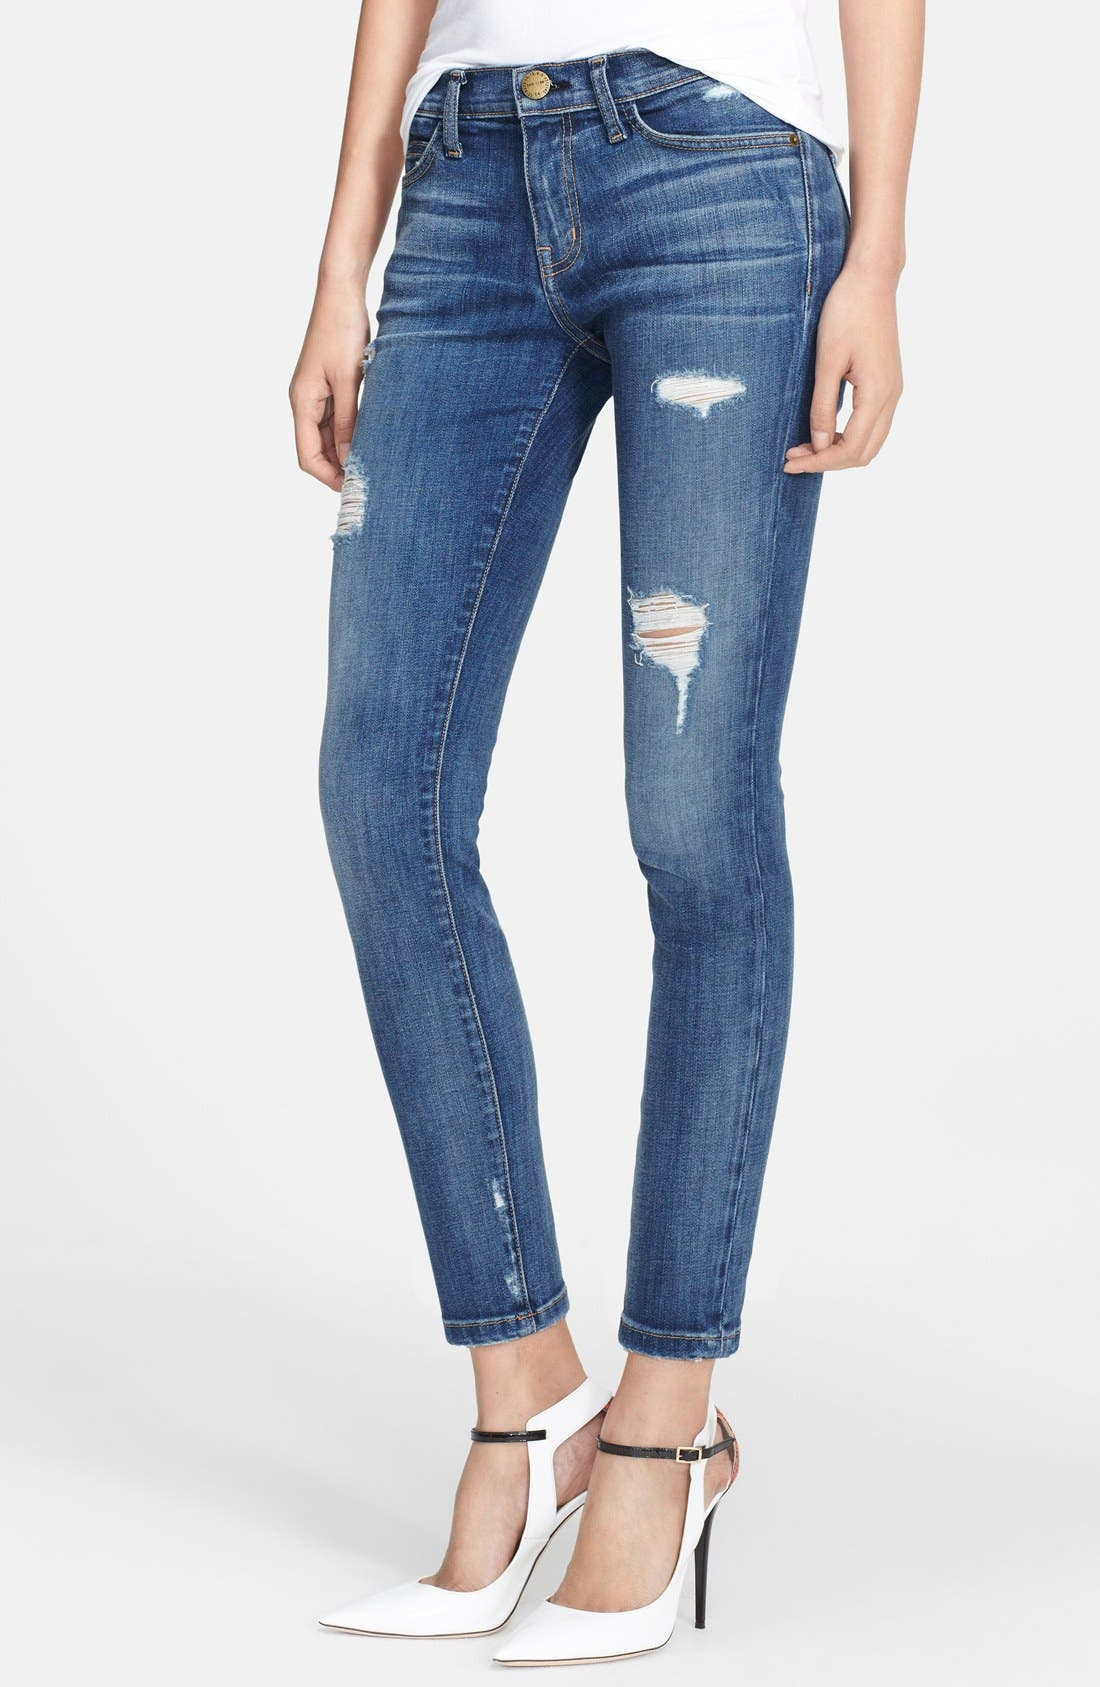 CURRENT/ELLIOTT The Stiletto Destroyed Skinny Jeans